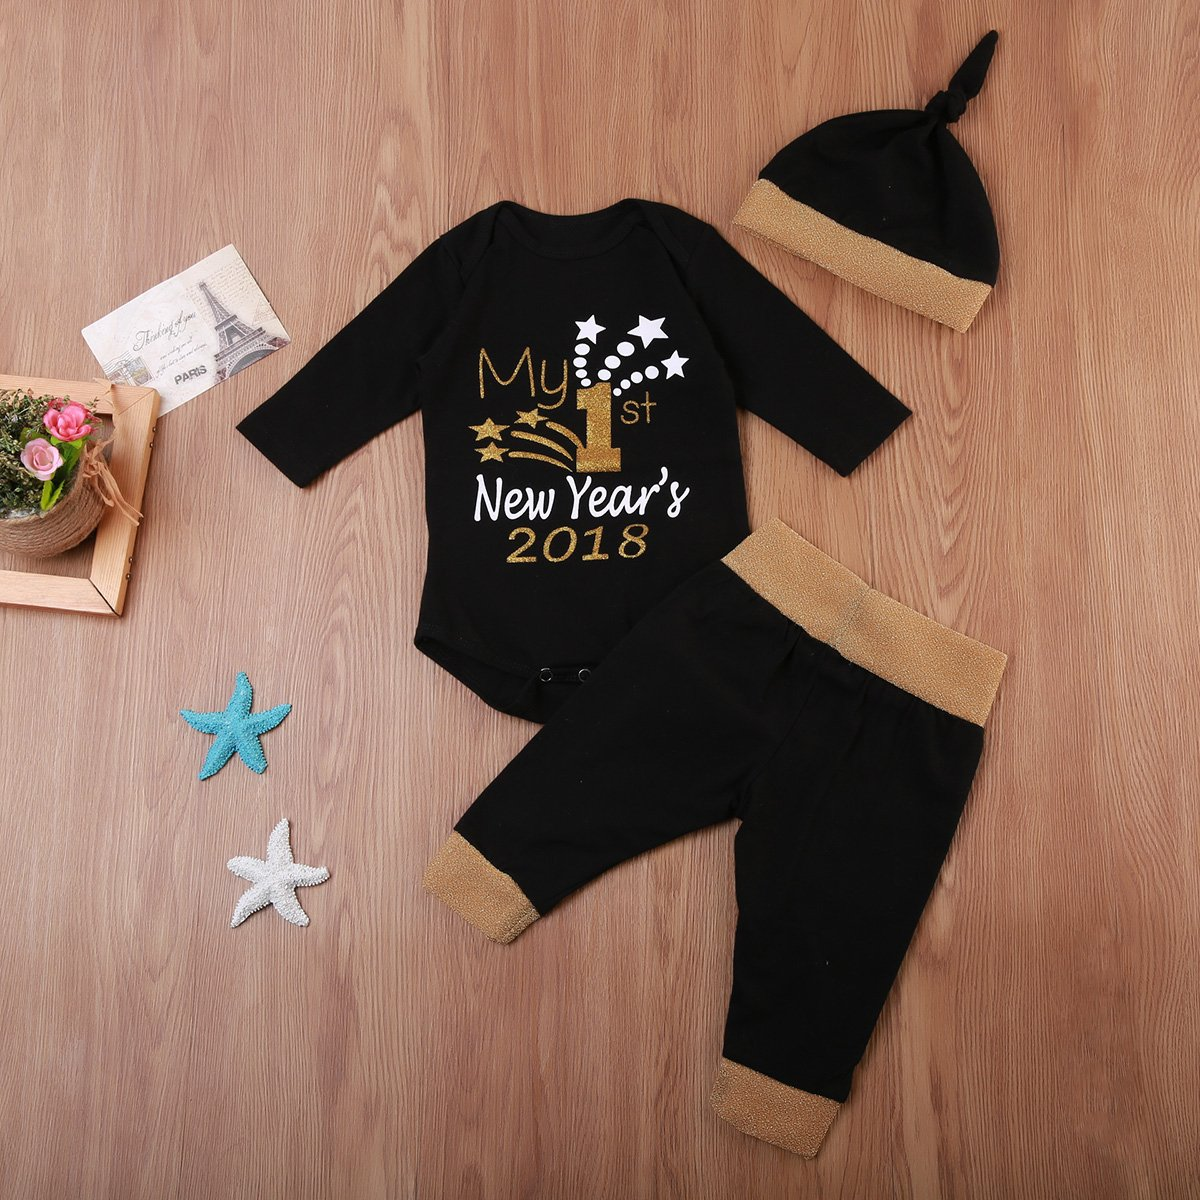 909f2c973a63 Amazon.com  Baby Christmas Outfits Set My First New Year 2018 Romper ...